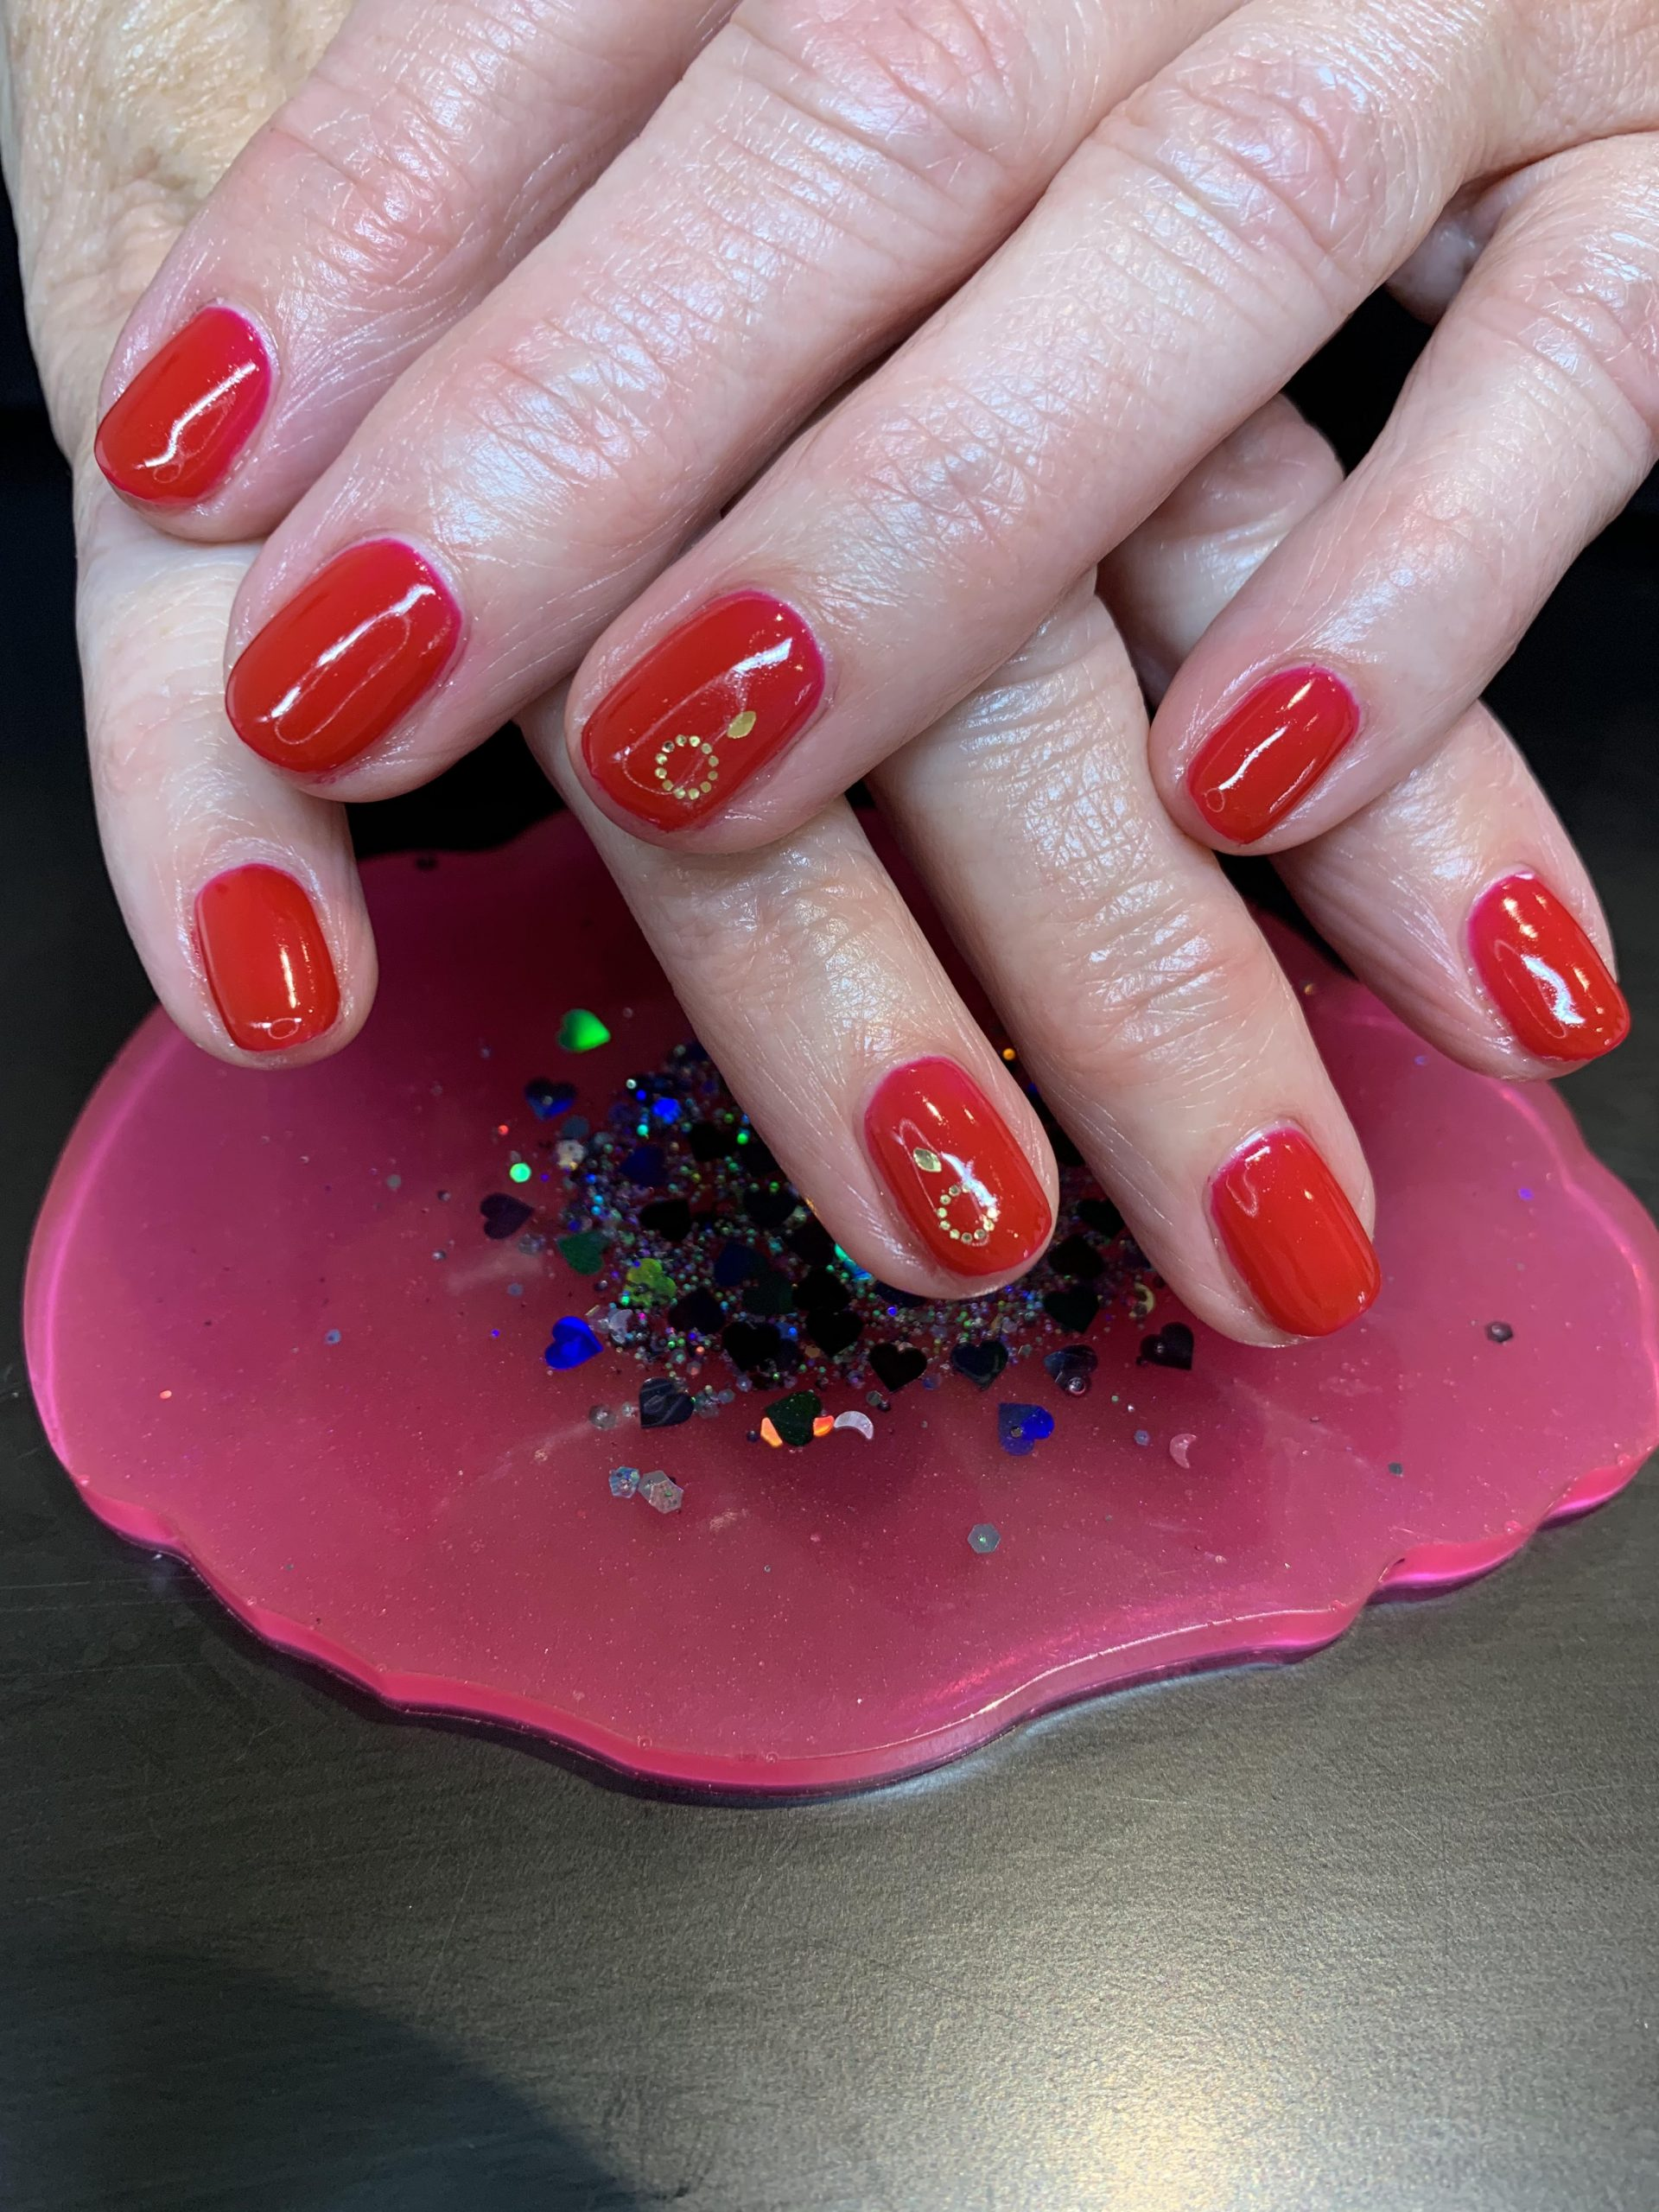 red nails, CND Shellac, nail art, nail pro, nail artist, nail technician, gel nails, shellac nails, acrylic nails, ware, mobile